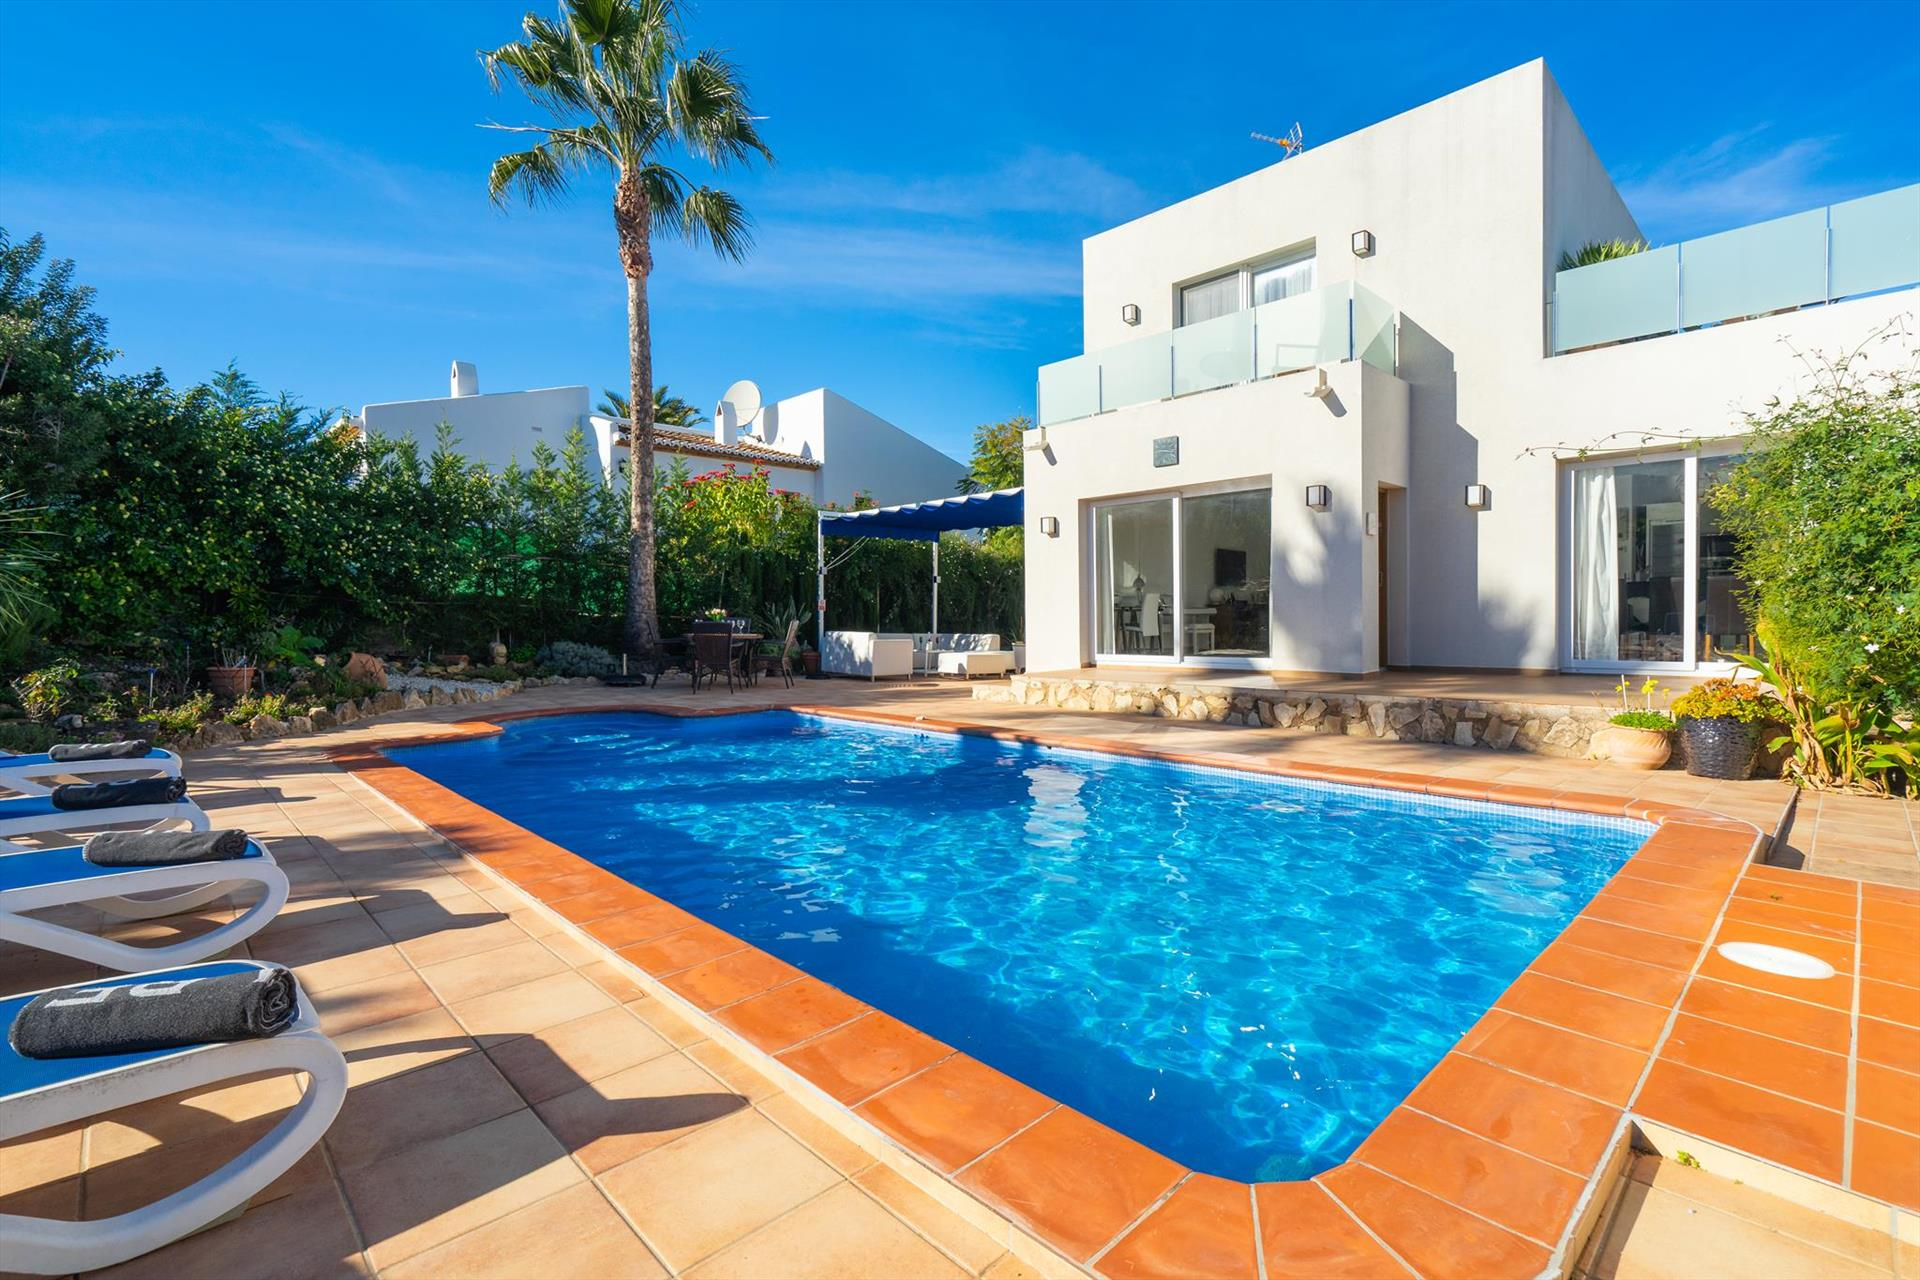 Reina, Modern and comfortable villa in Javea, on the Costa Blanca, Spain  with private pool for 4 persons.....